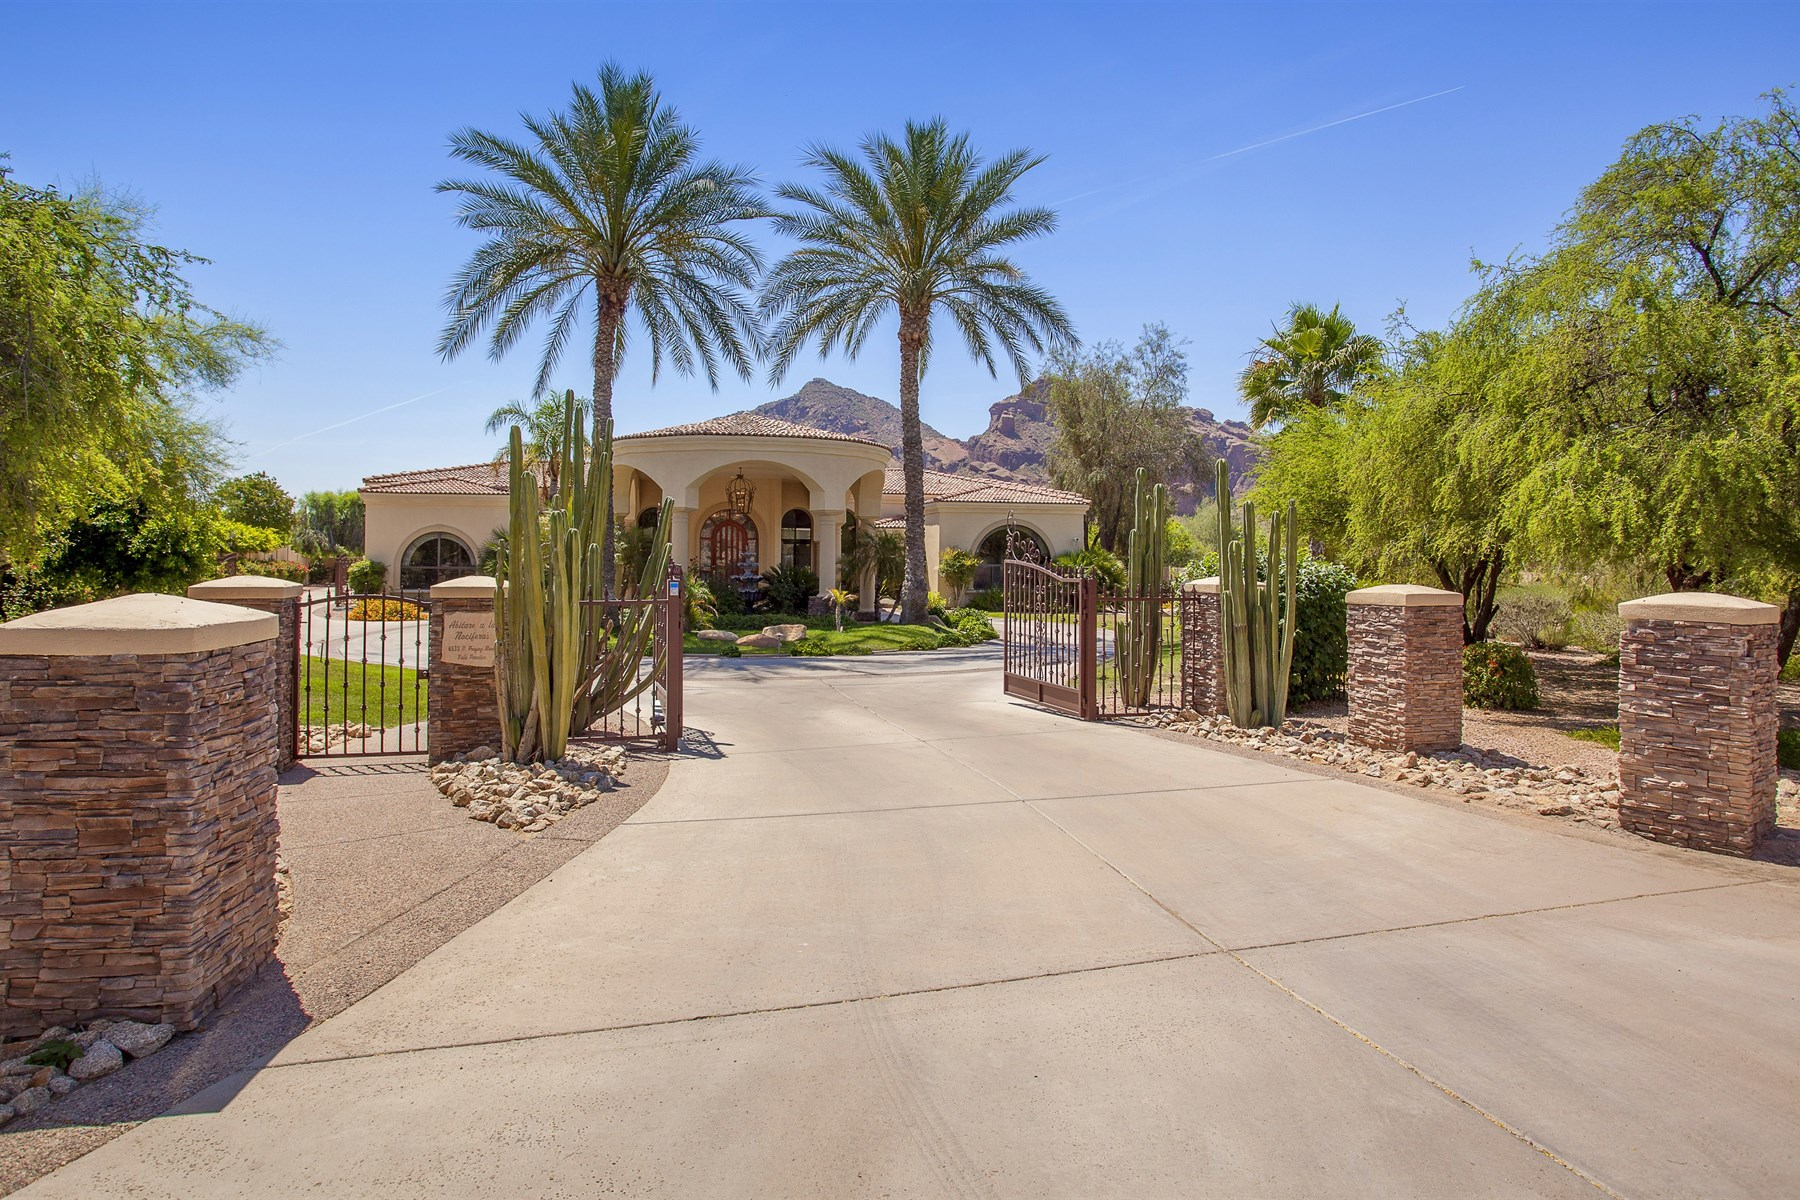 Moradia para Venda às Stunning Views of Camelback Mountain from this fabulous 1.16 Acre Gated Estate. 6533 N PRAYING MONK RD Paradise Valley, Arizona 85253 Estados Unidos